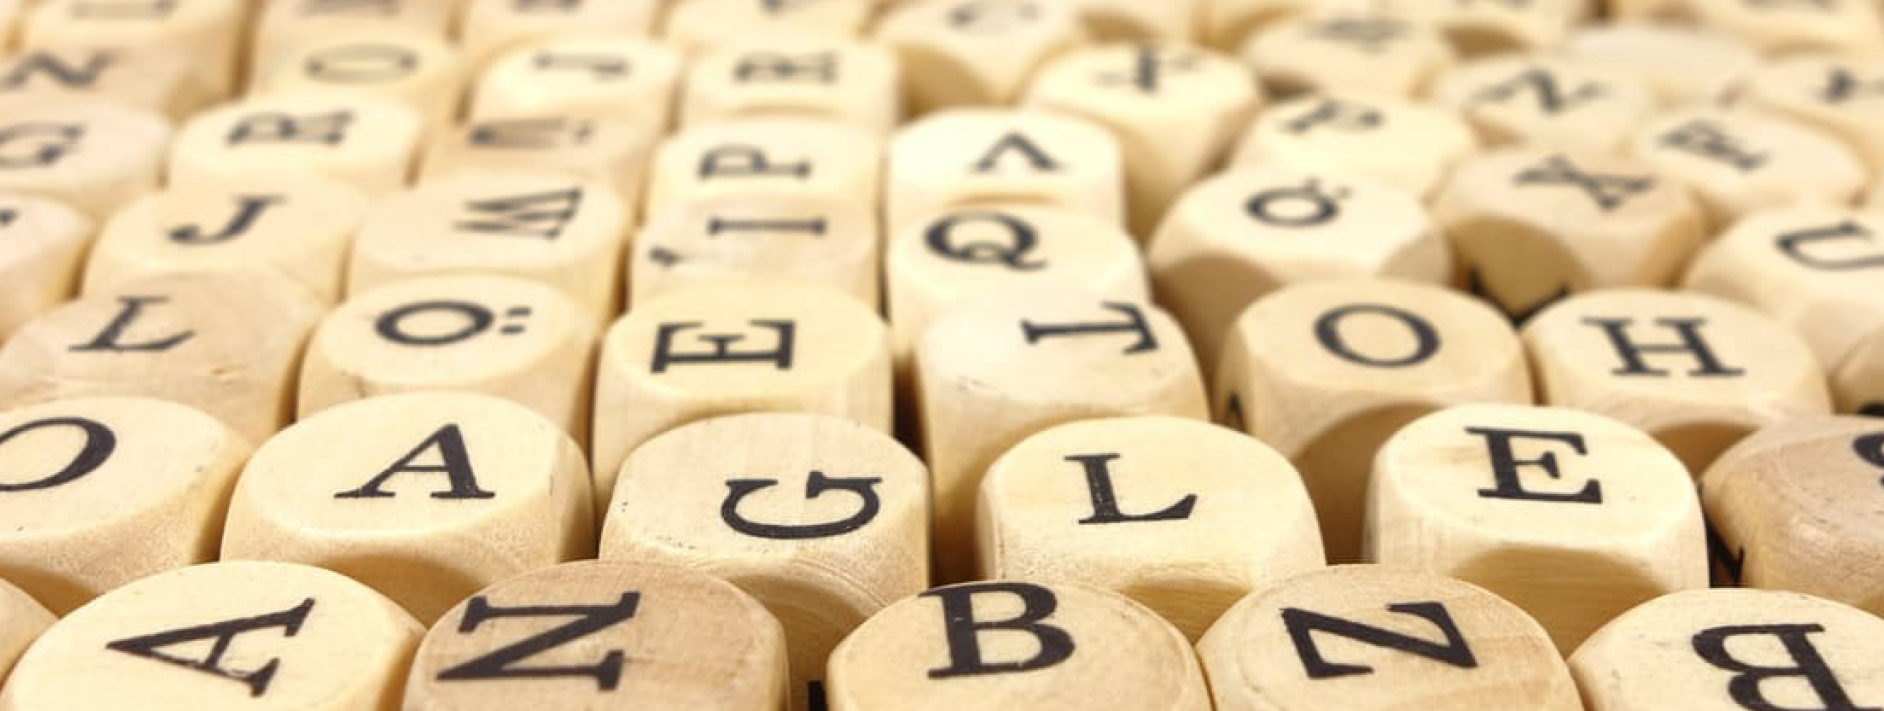 The Ultimate HubSpot Terminology Guide